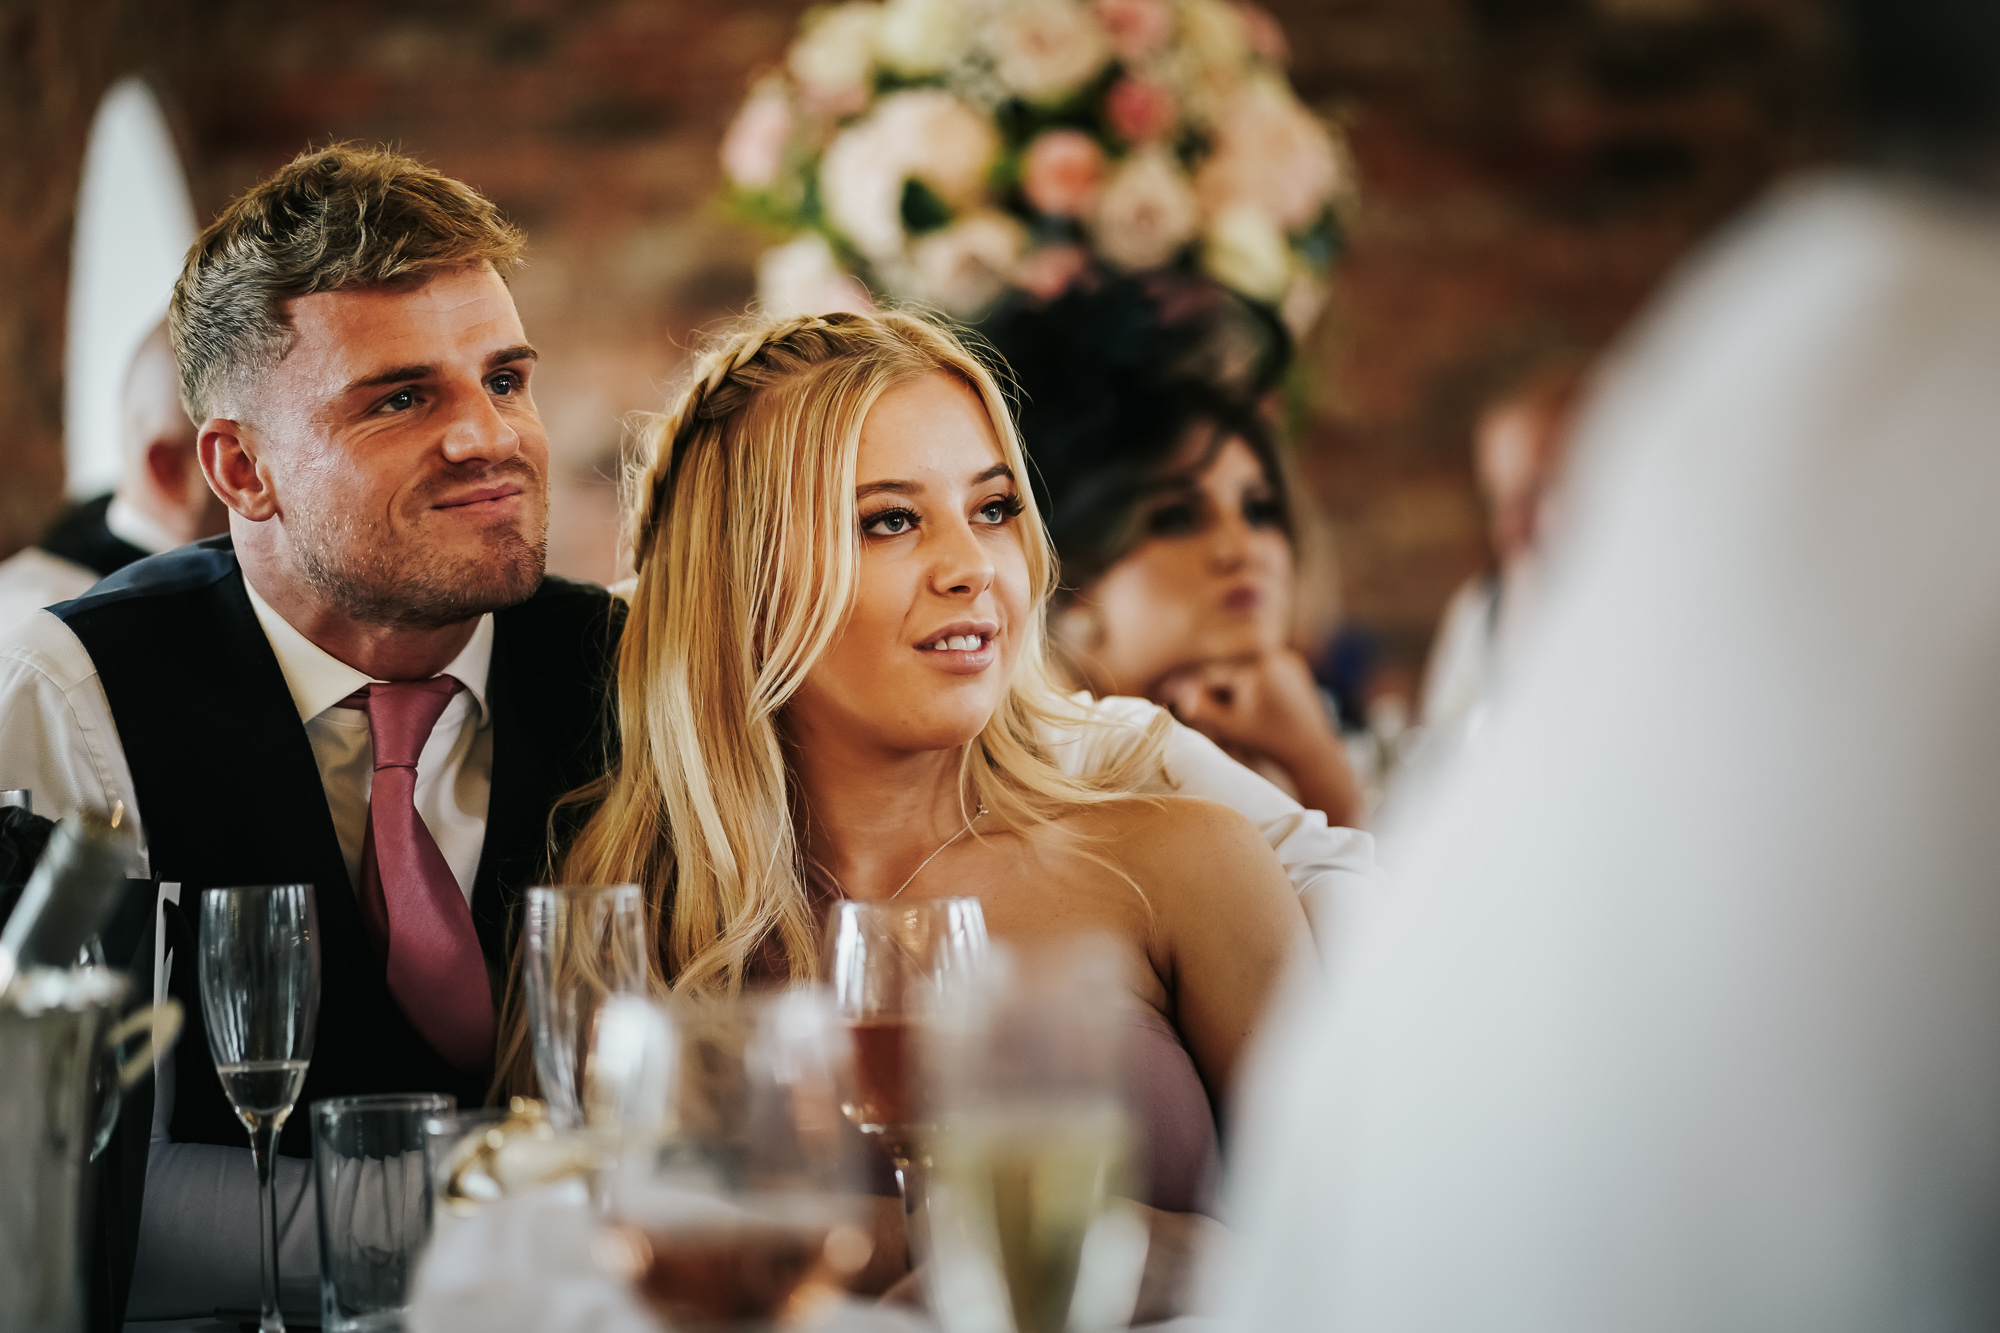 Double Tree By Hilton Chester Wedding Photography cheshire wedding photographer (48 of 59).jpg